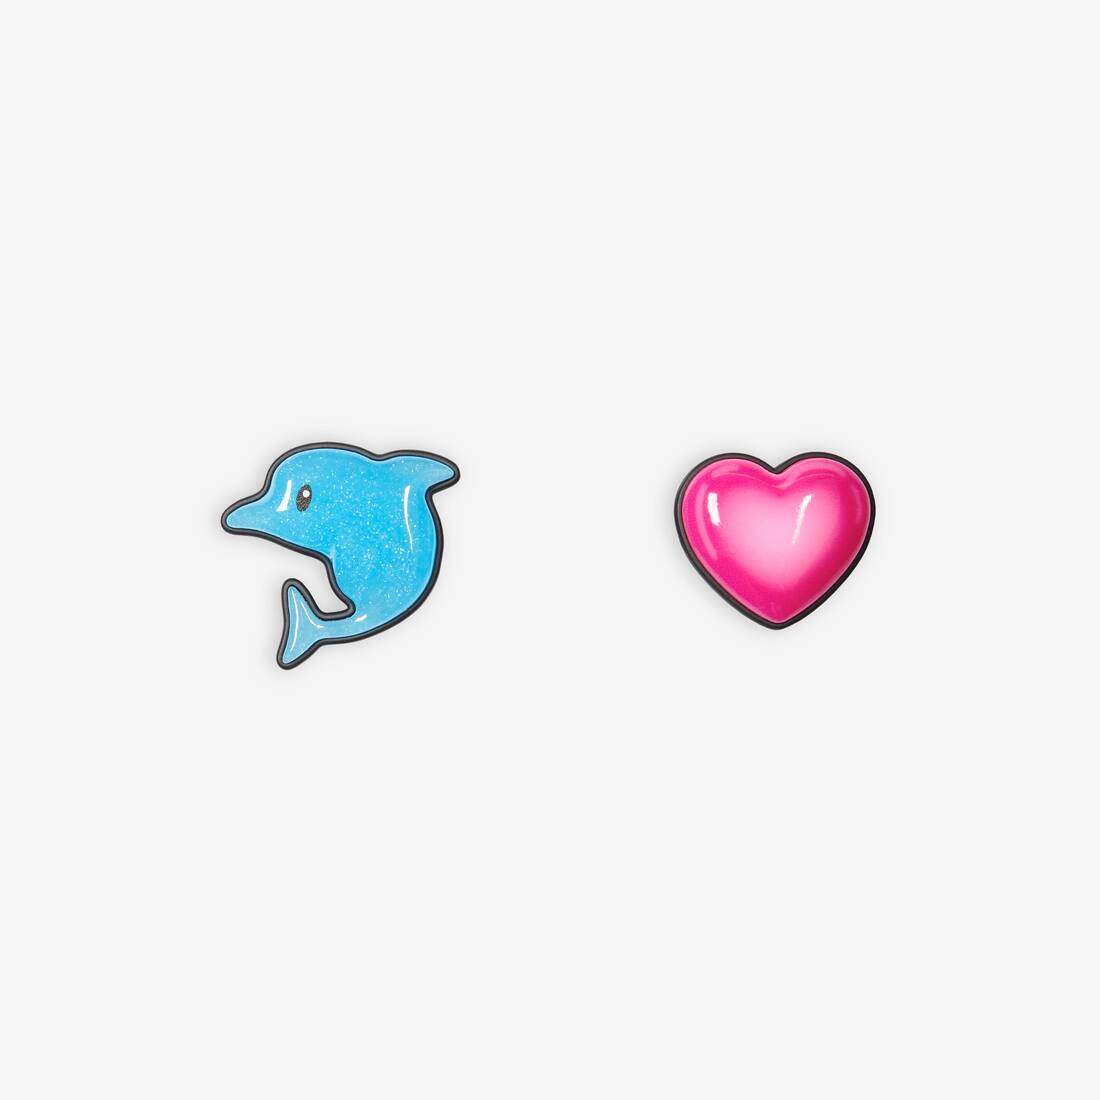 Display zoomed version of sticker dolphin and heart earrings 1